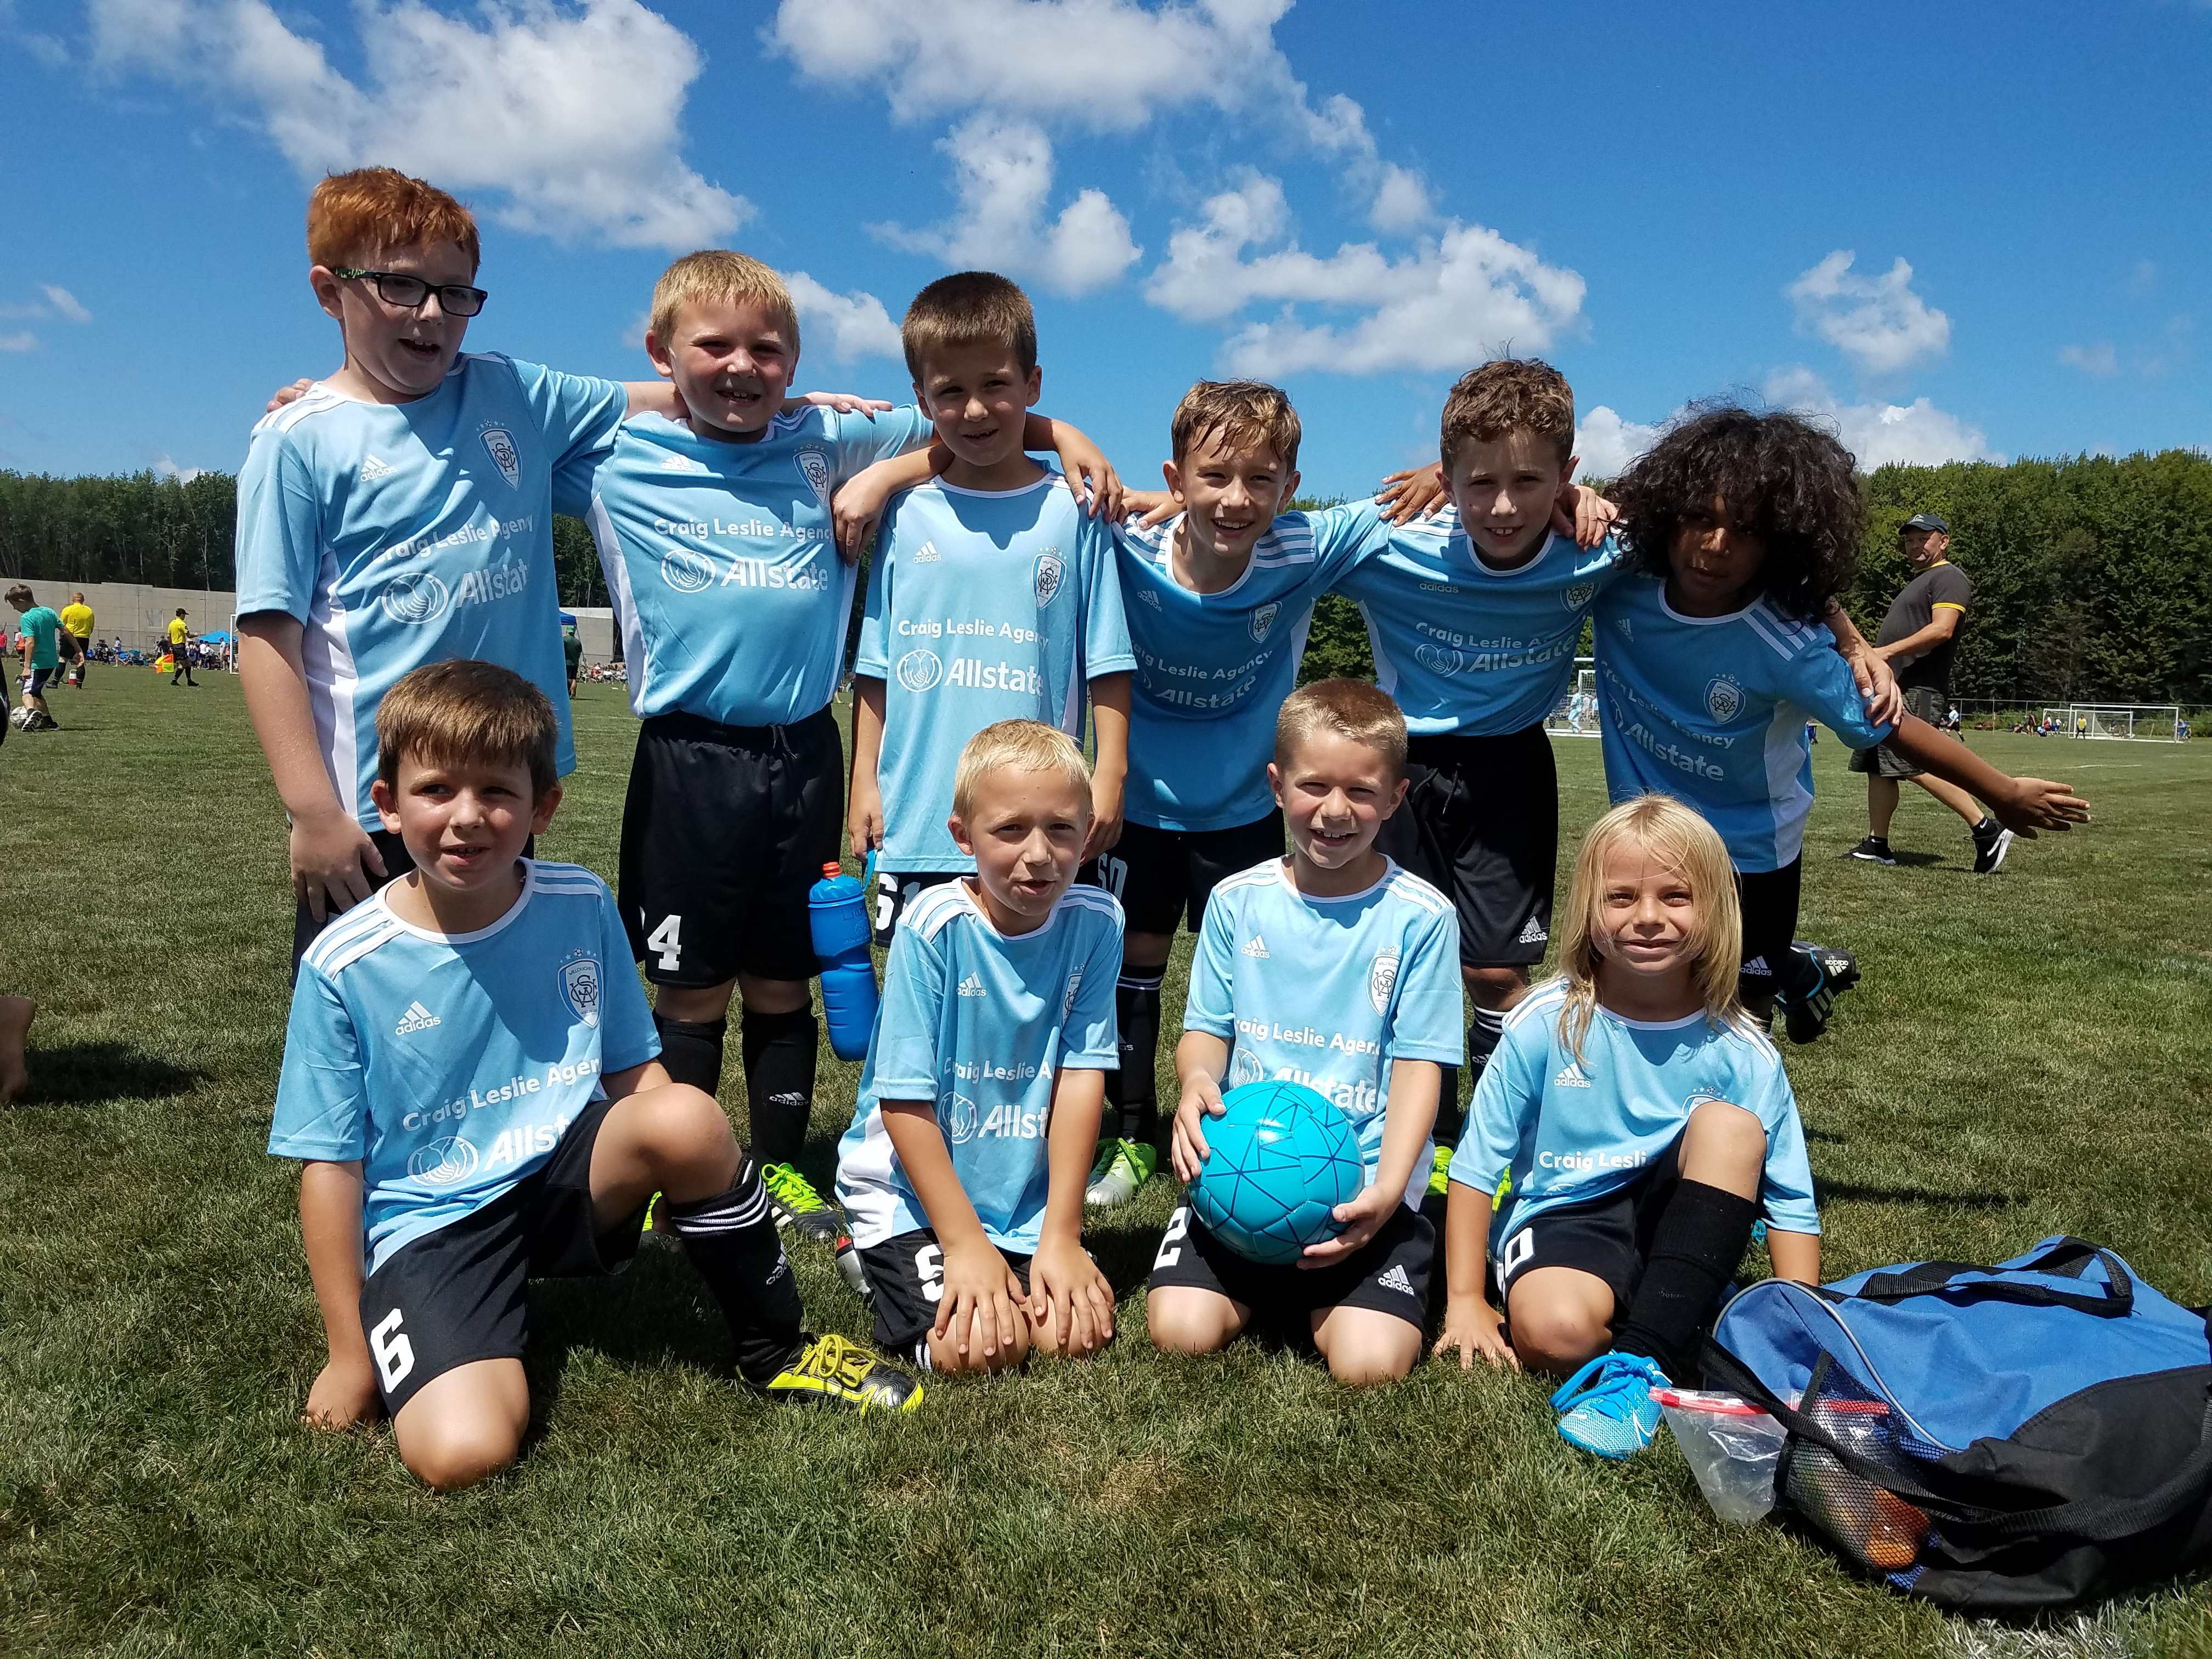 Willoughby Soccer Club Group Photo 2